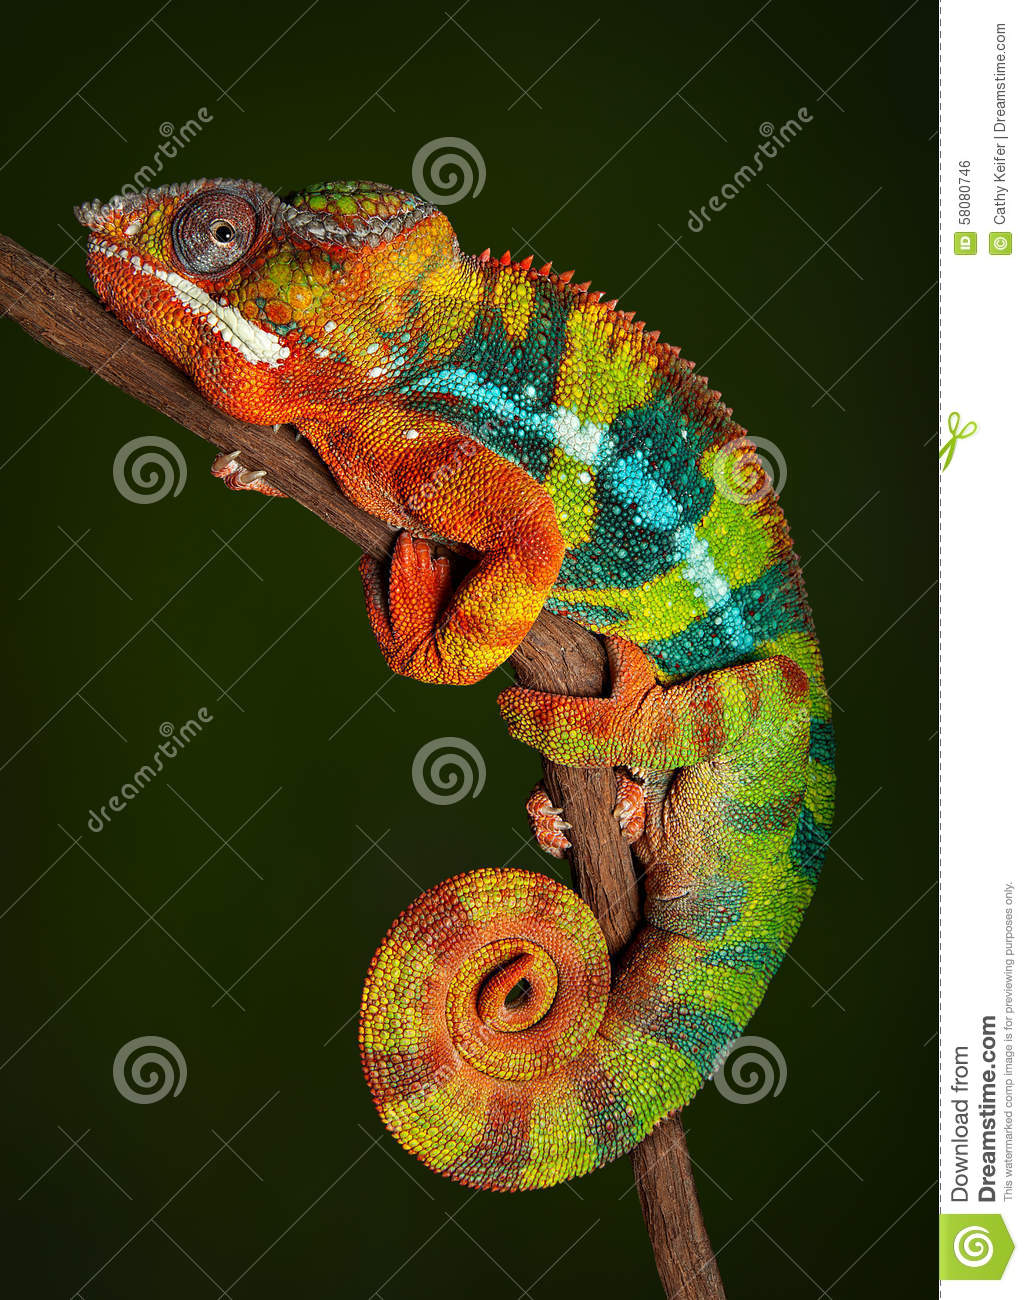 X 1 Chameleon Panther Chameleon at r...